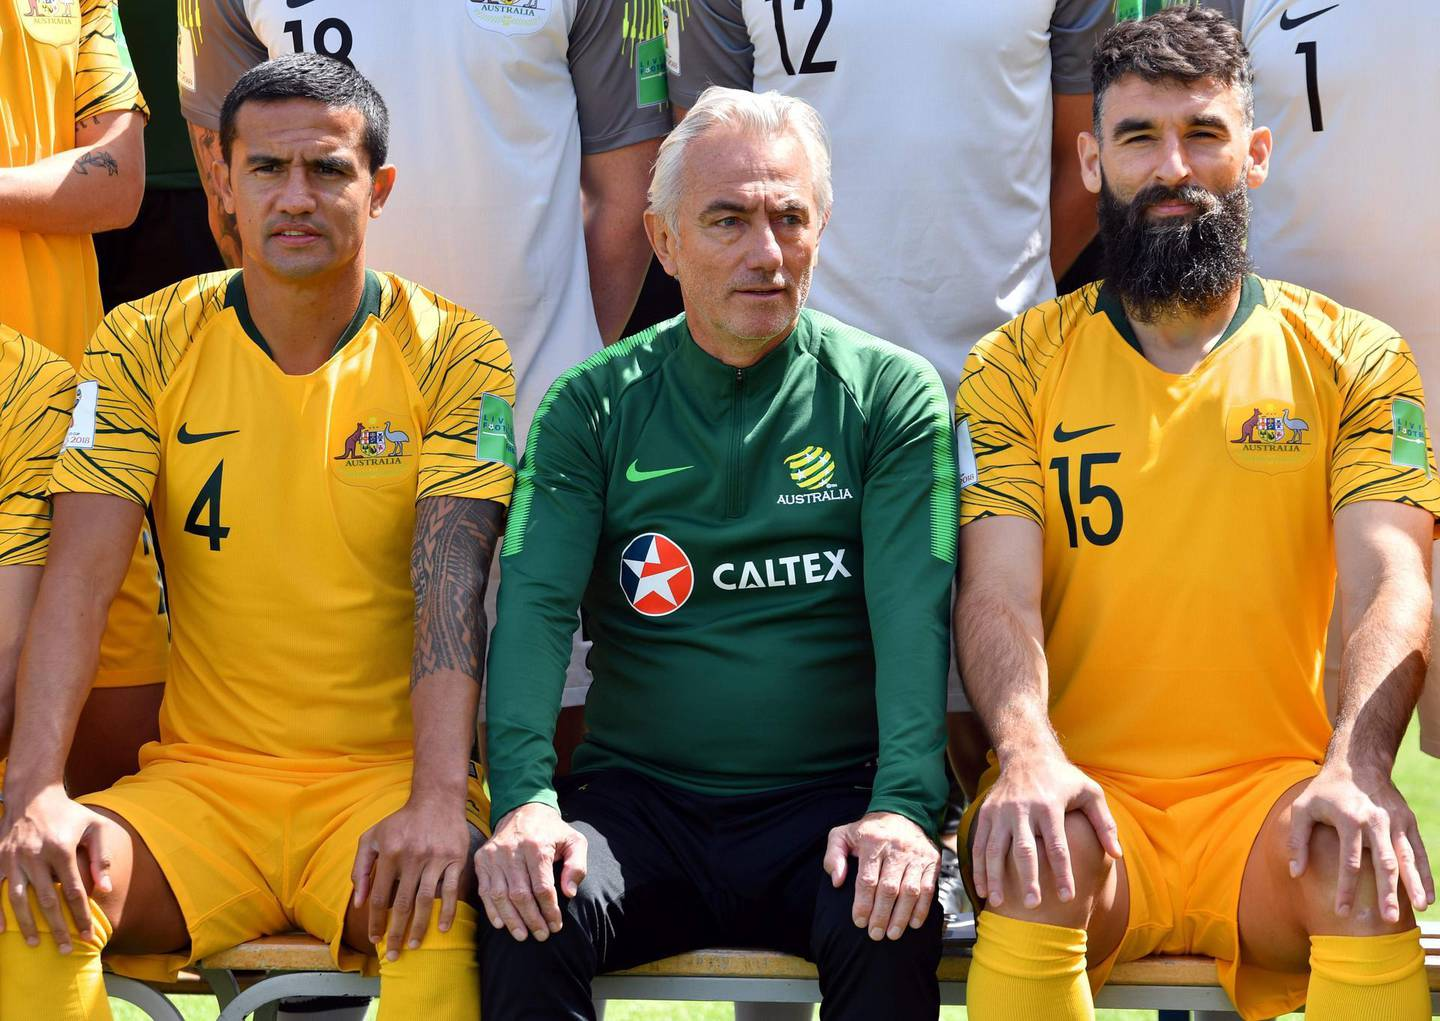 Australia's forward Tim Cahill (L), coach Bert van Marwijk and midfielder Mile Jedinak (R) pose on the sideline of a training session in Kazan on June 12, 2018, ahead of the Russia 2018 World Cup football tournament.  / AFP / SAEED KHAN